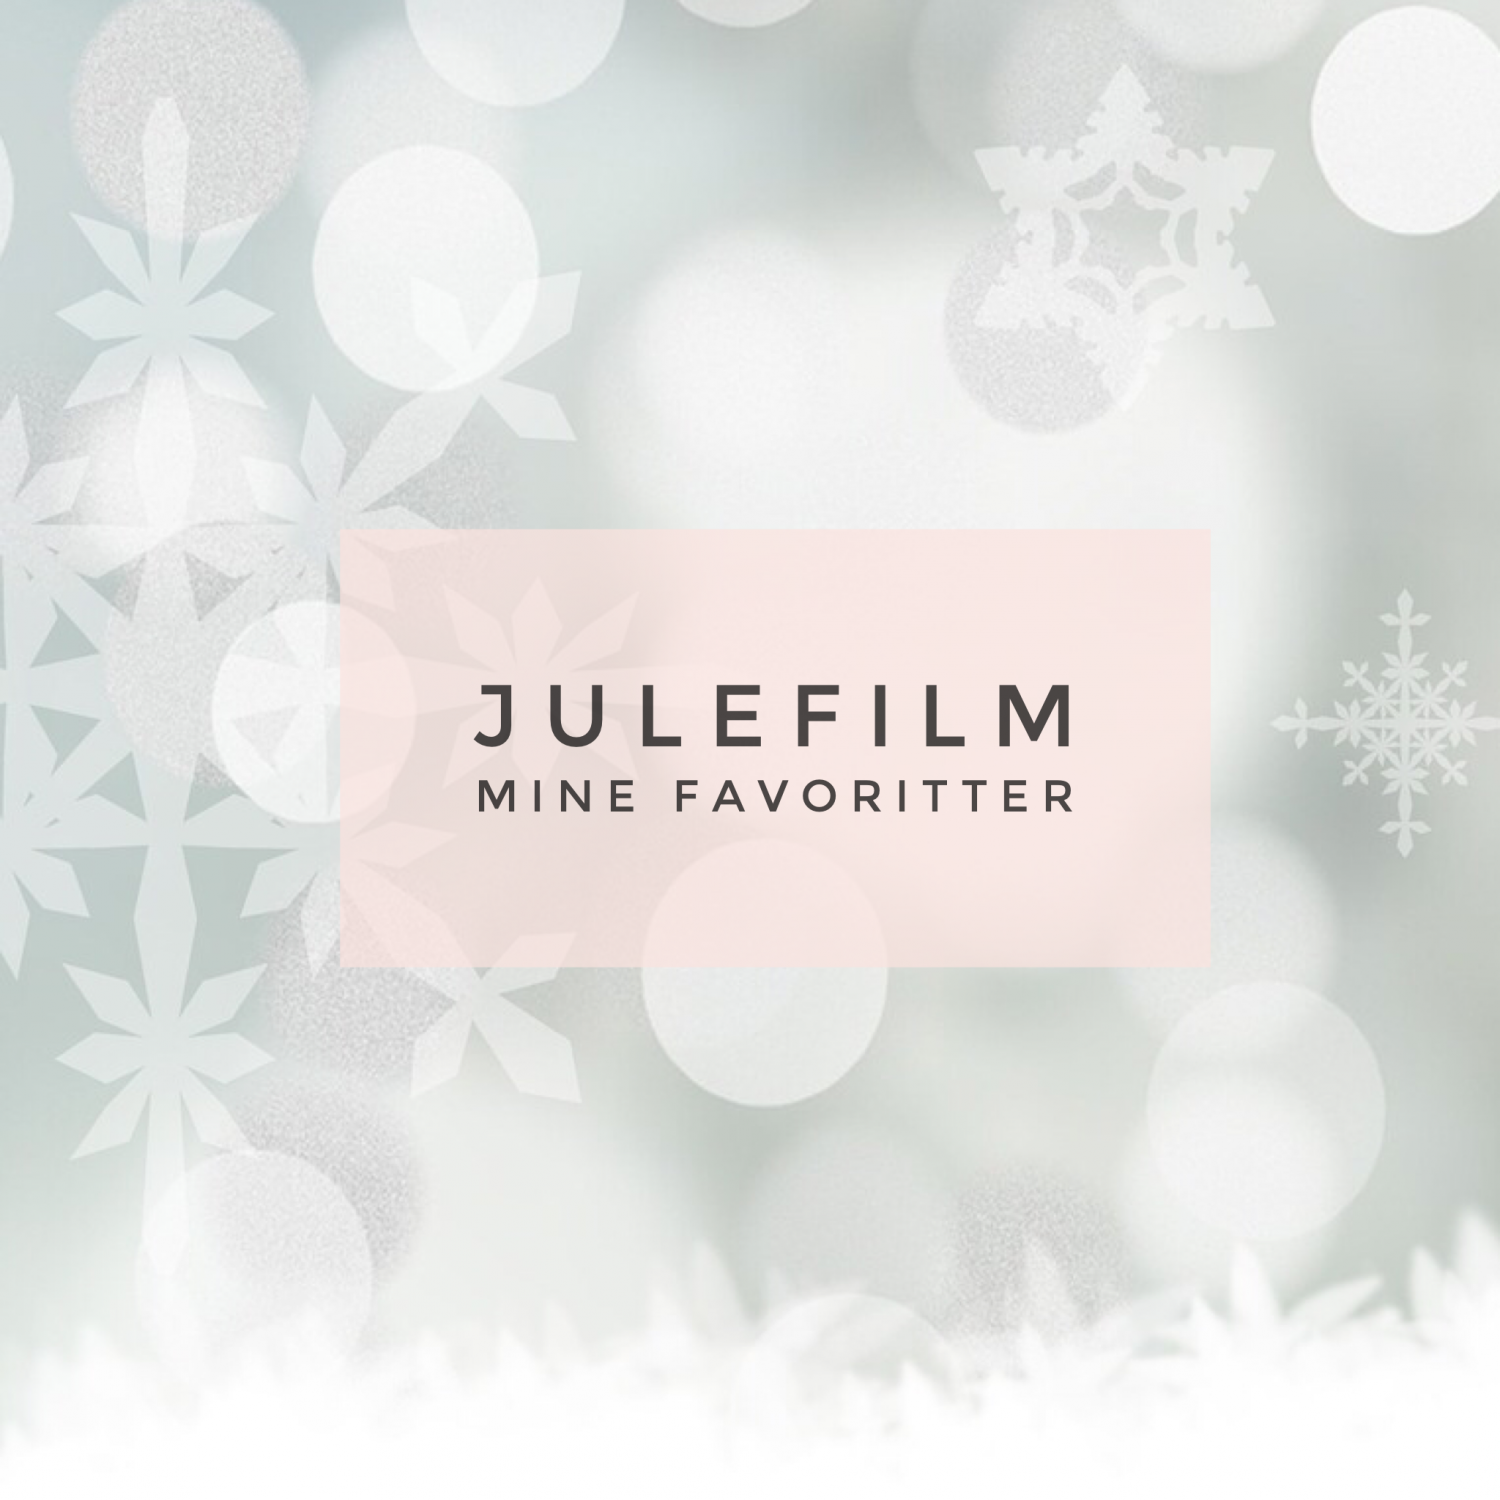 Julefilm-mine favoritter